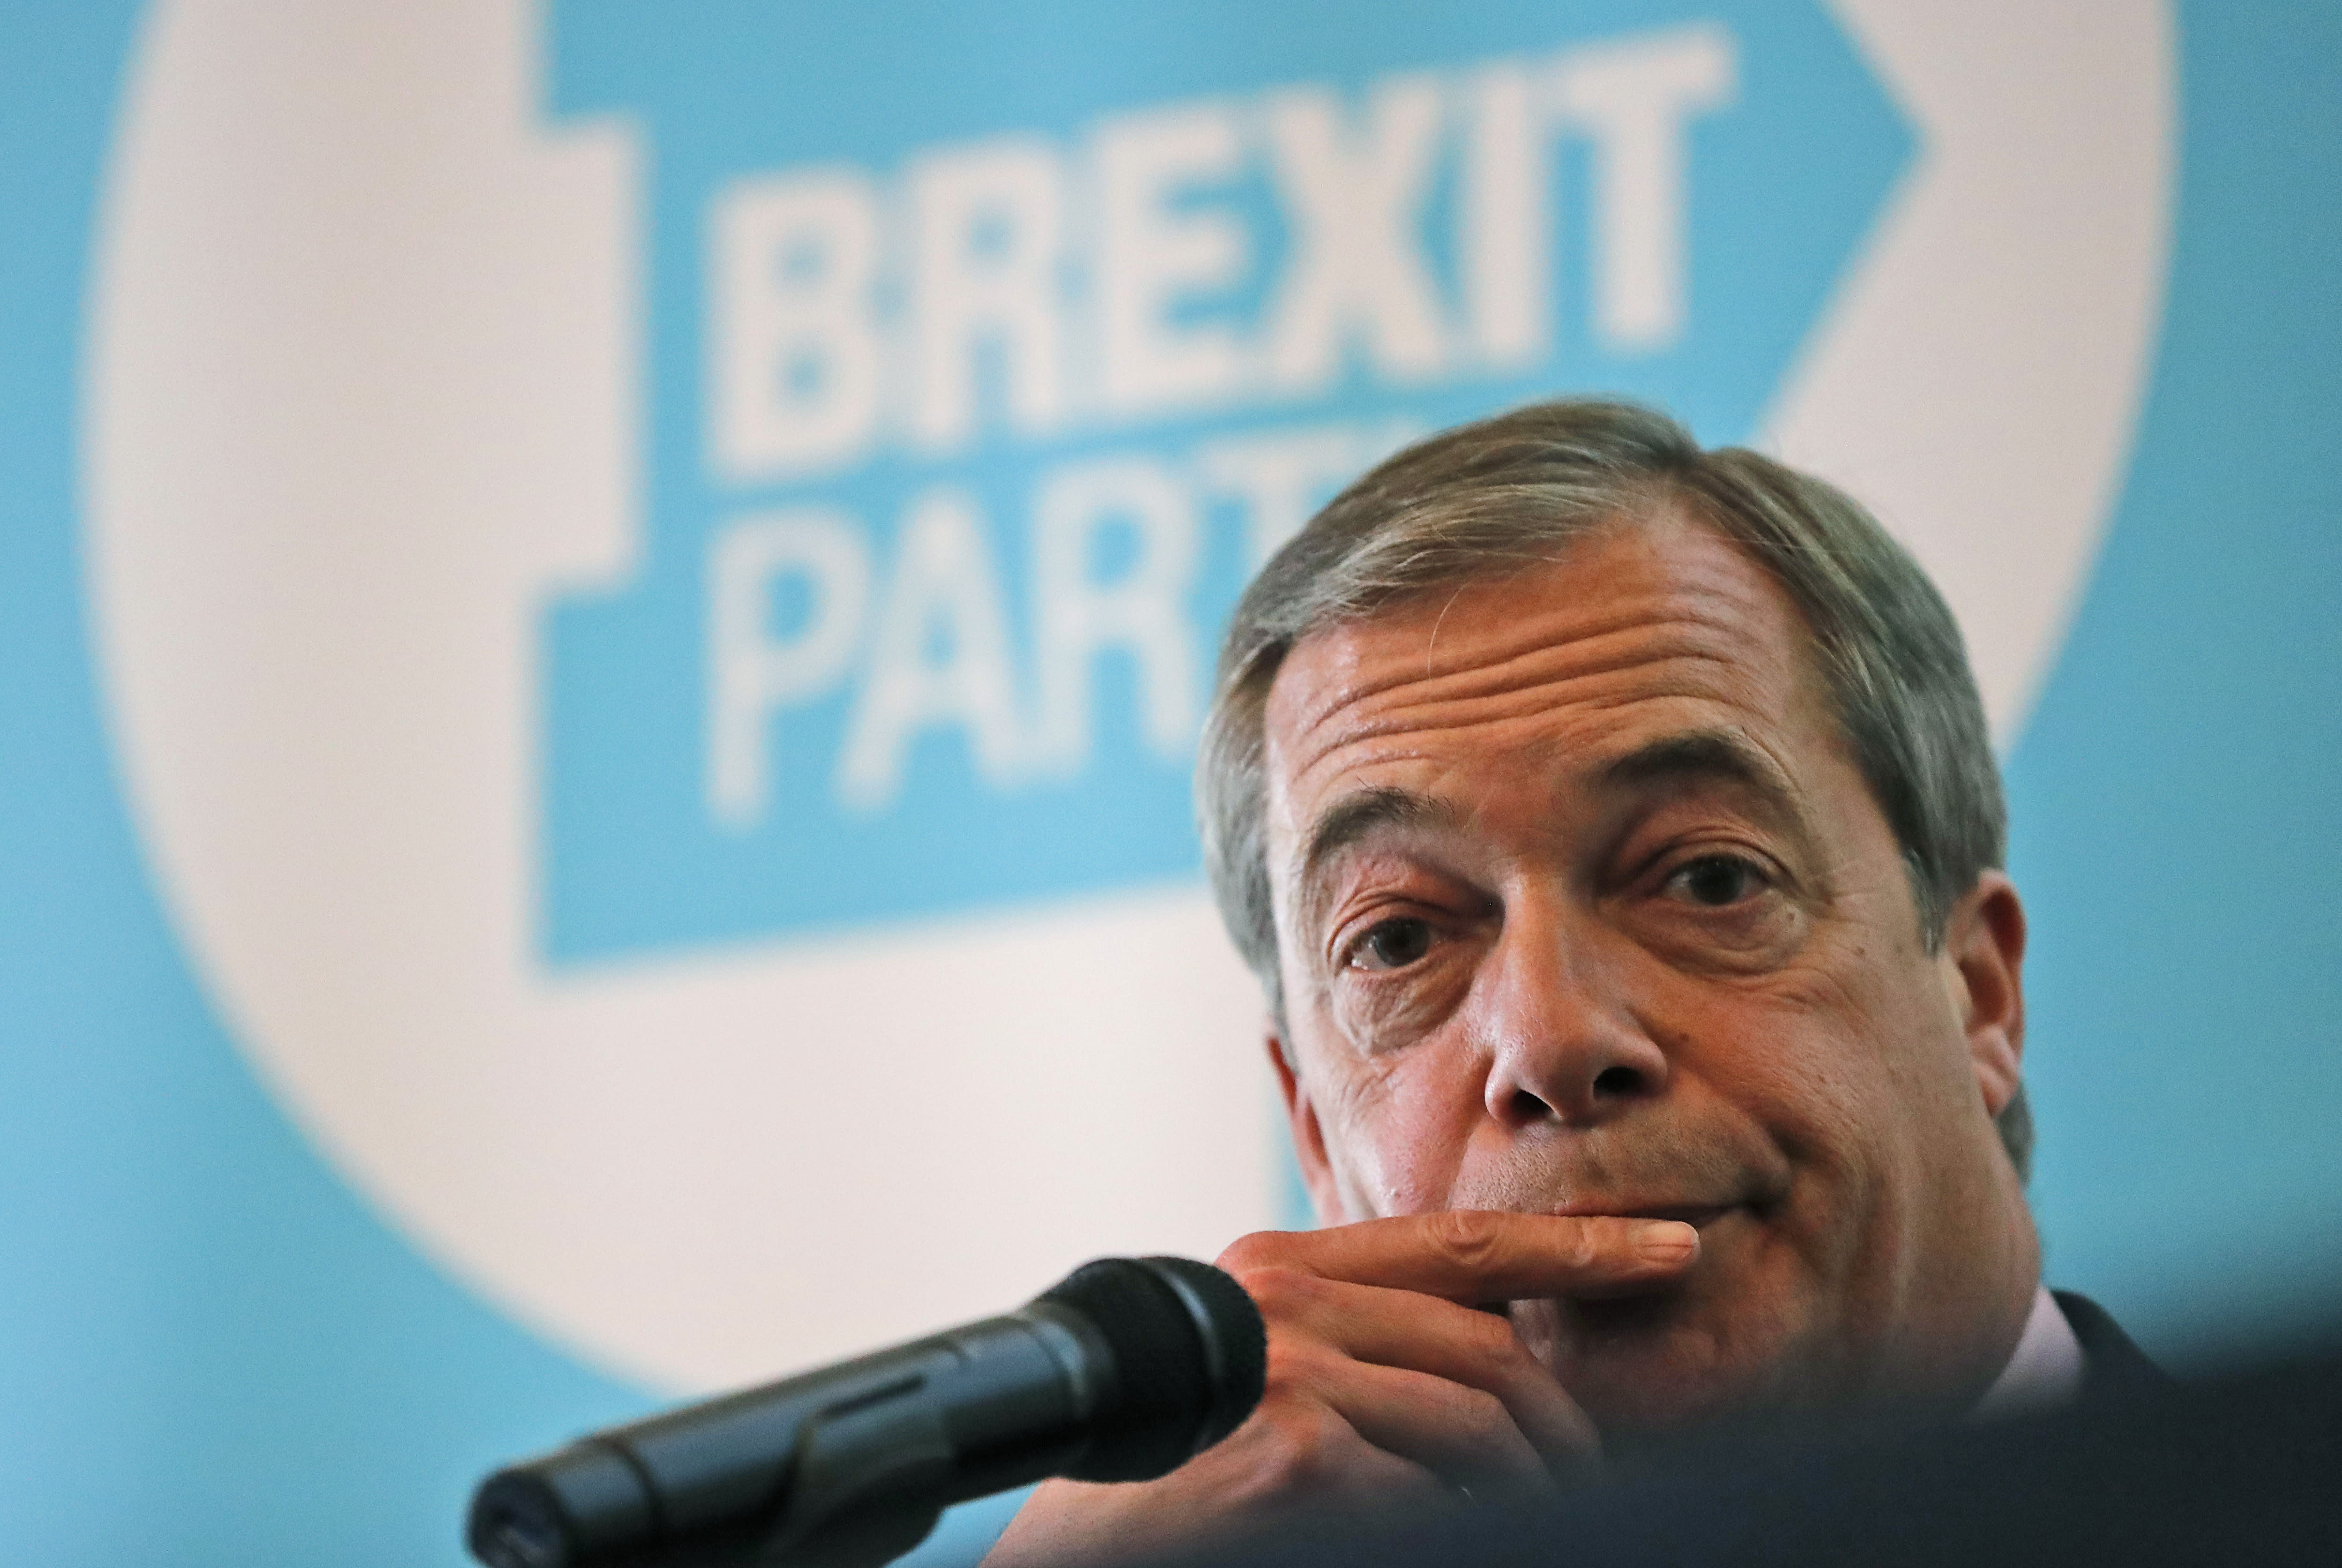 Boris Johnson's allies have made 'arms length' approach over Nigel Farage peerage